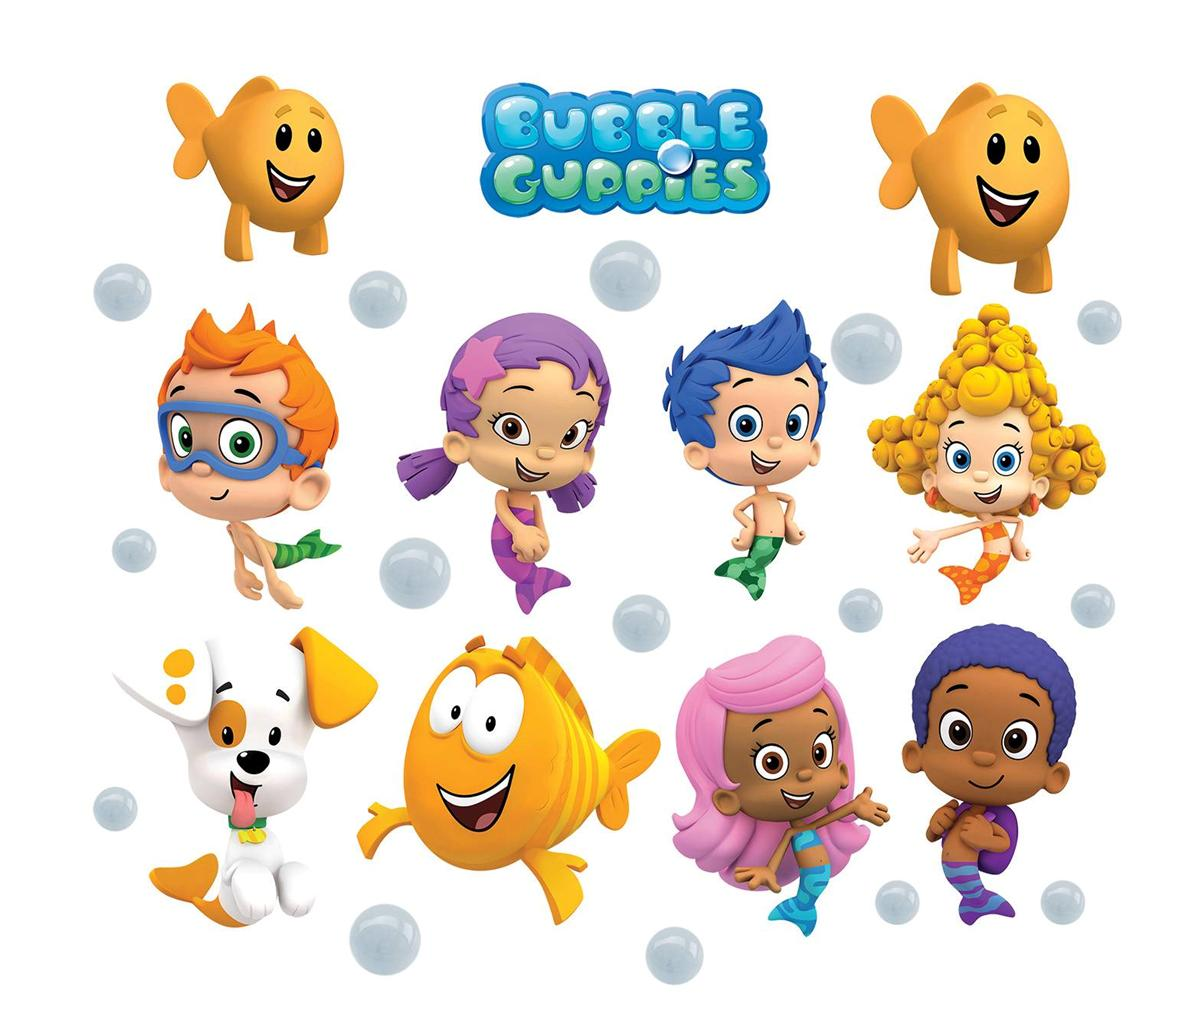 Bubble Guppies Wallpapers High Quality